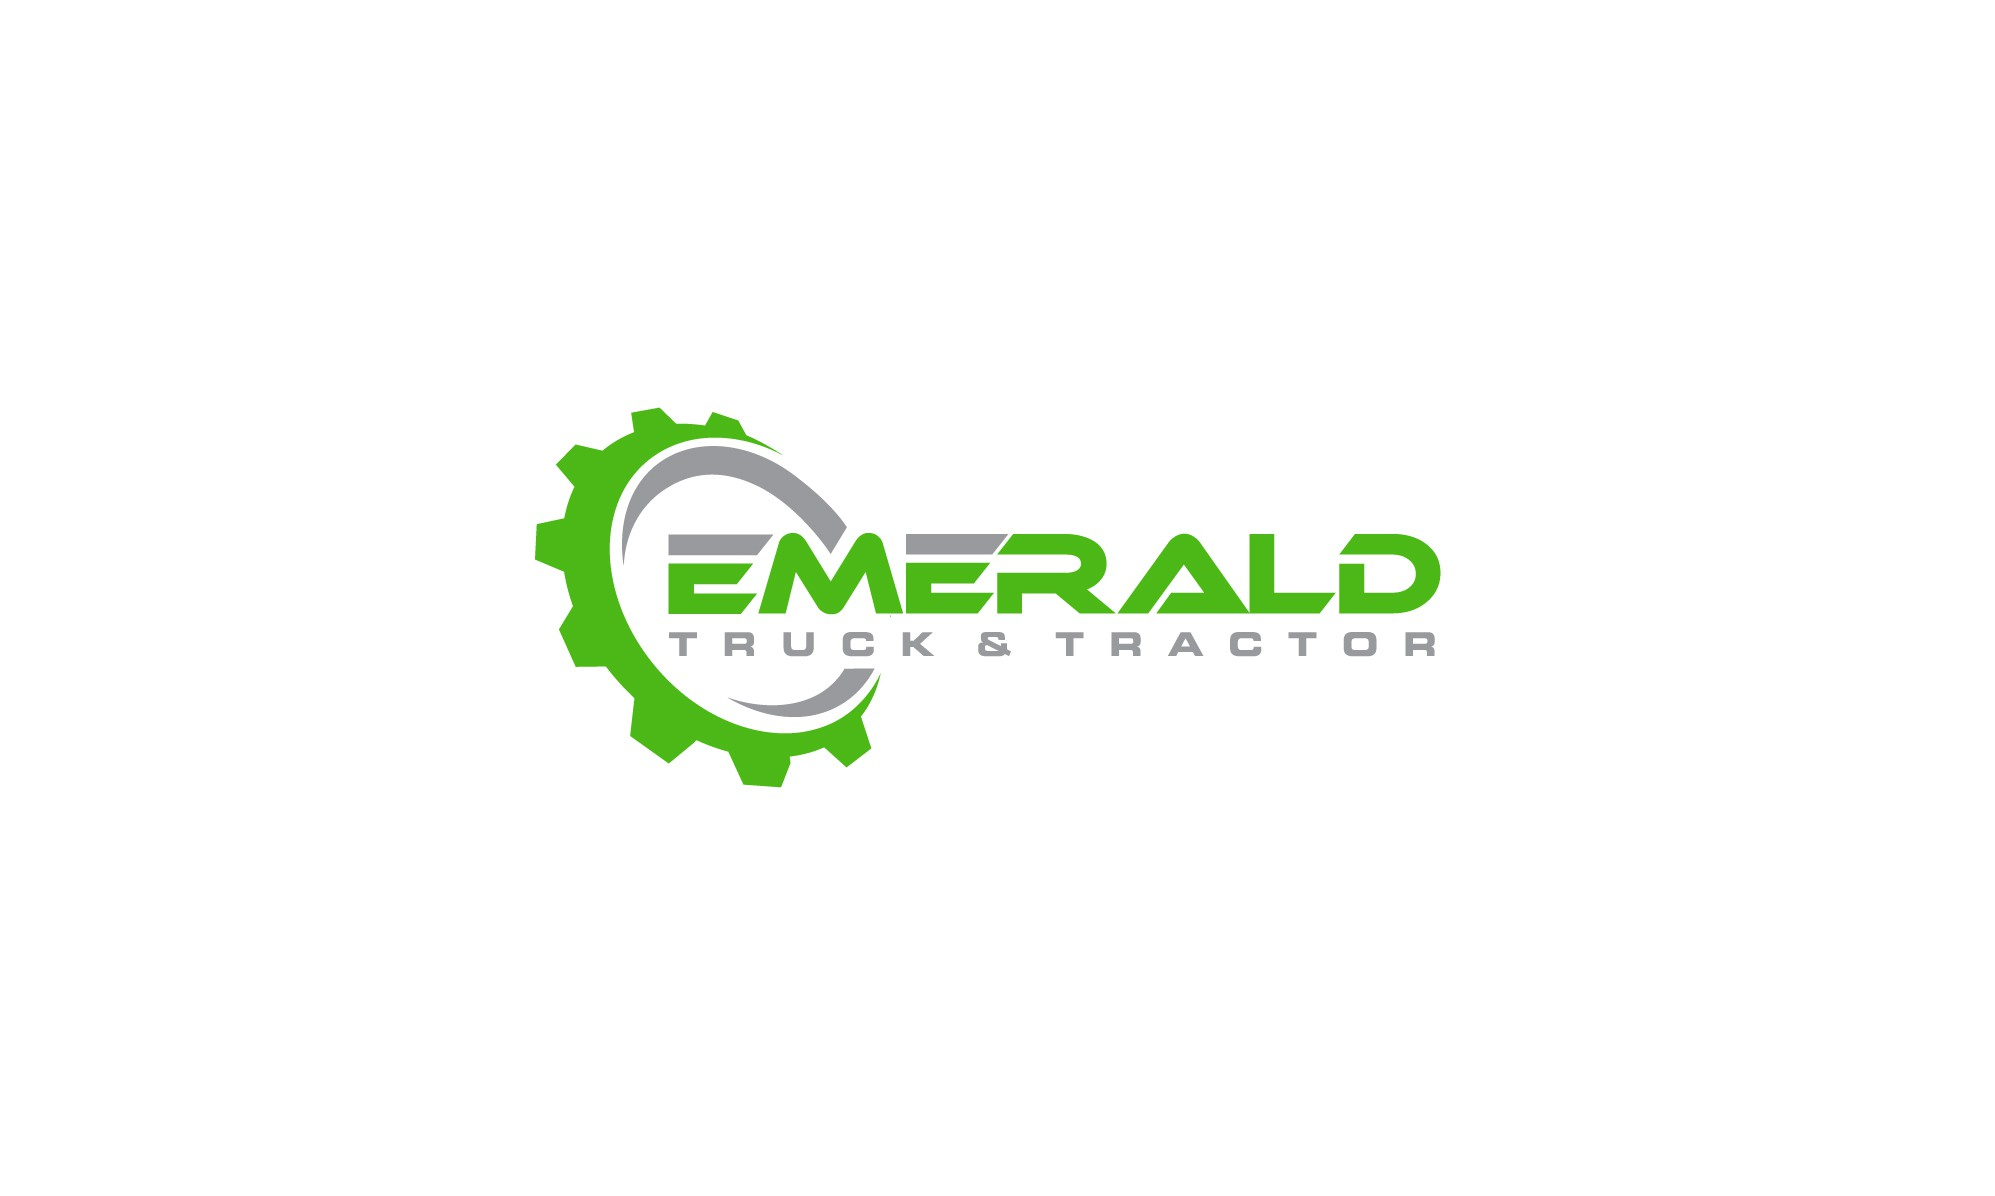 Create an eye catching logo for a brand new company, EMERALD Truck & Tractor